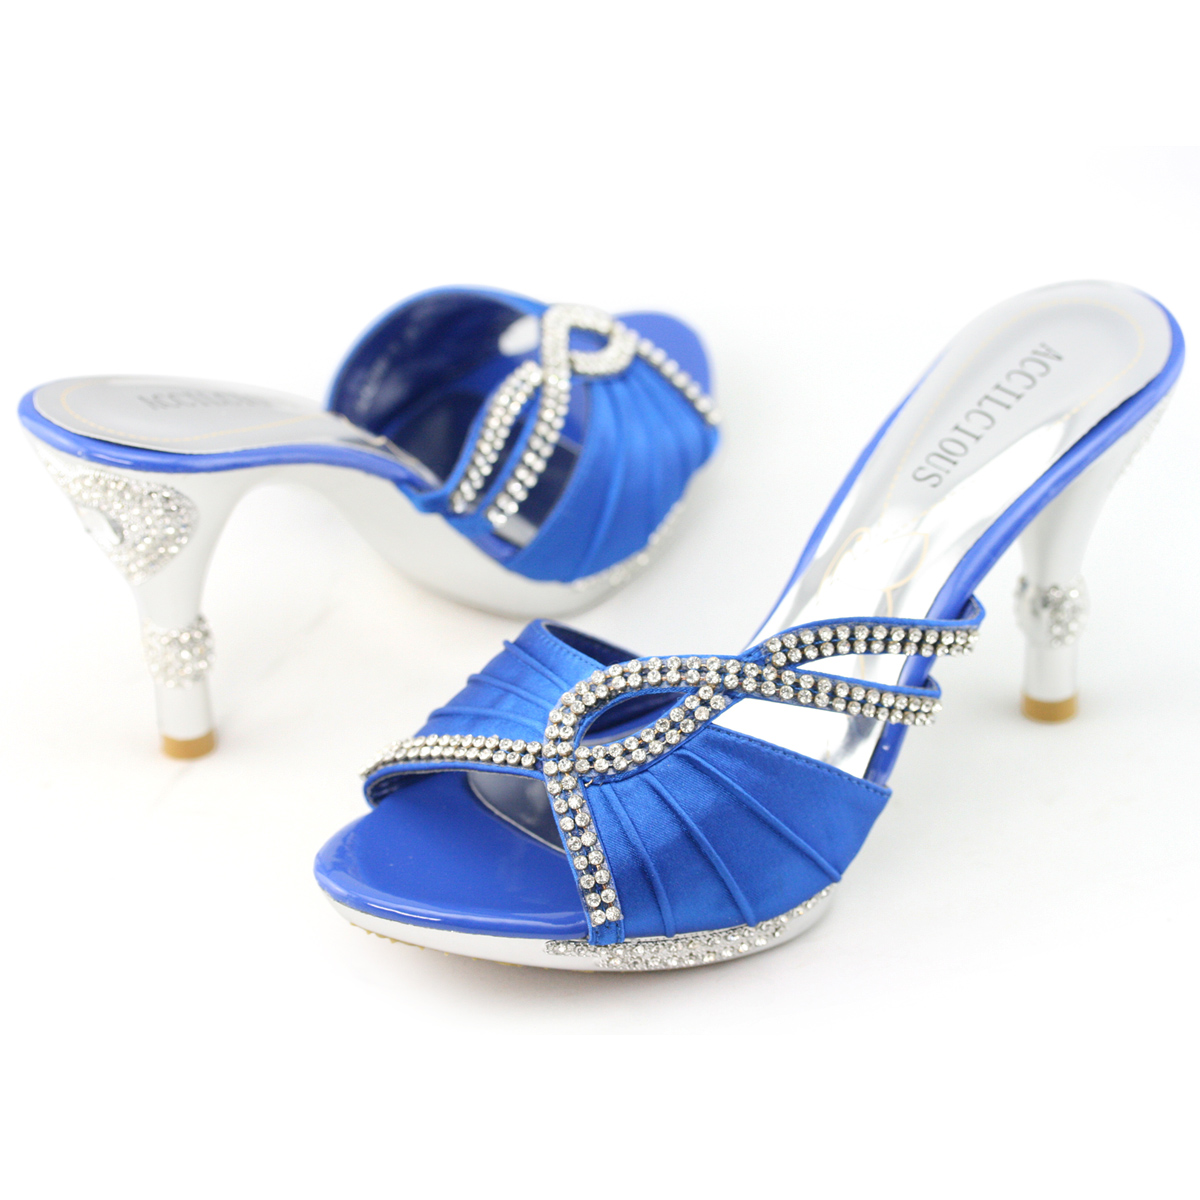 SHOEZY-Womens-Strappy-Rhinestone-Platform-Evening-Party-Dress-Mules-Heels-Shoes